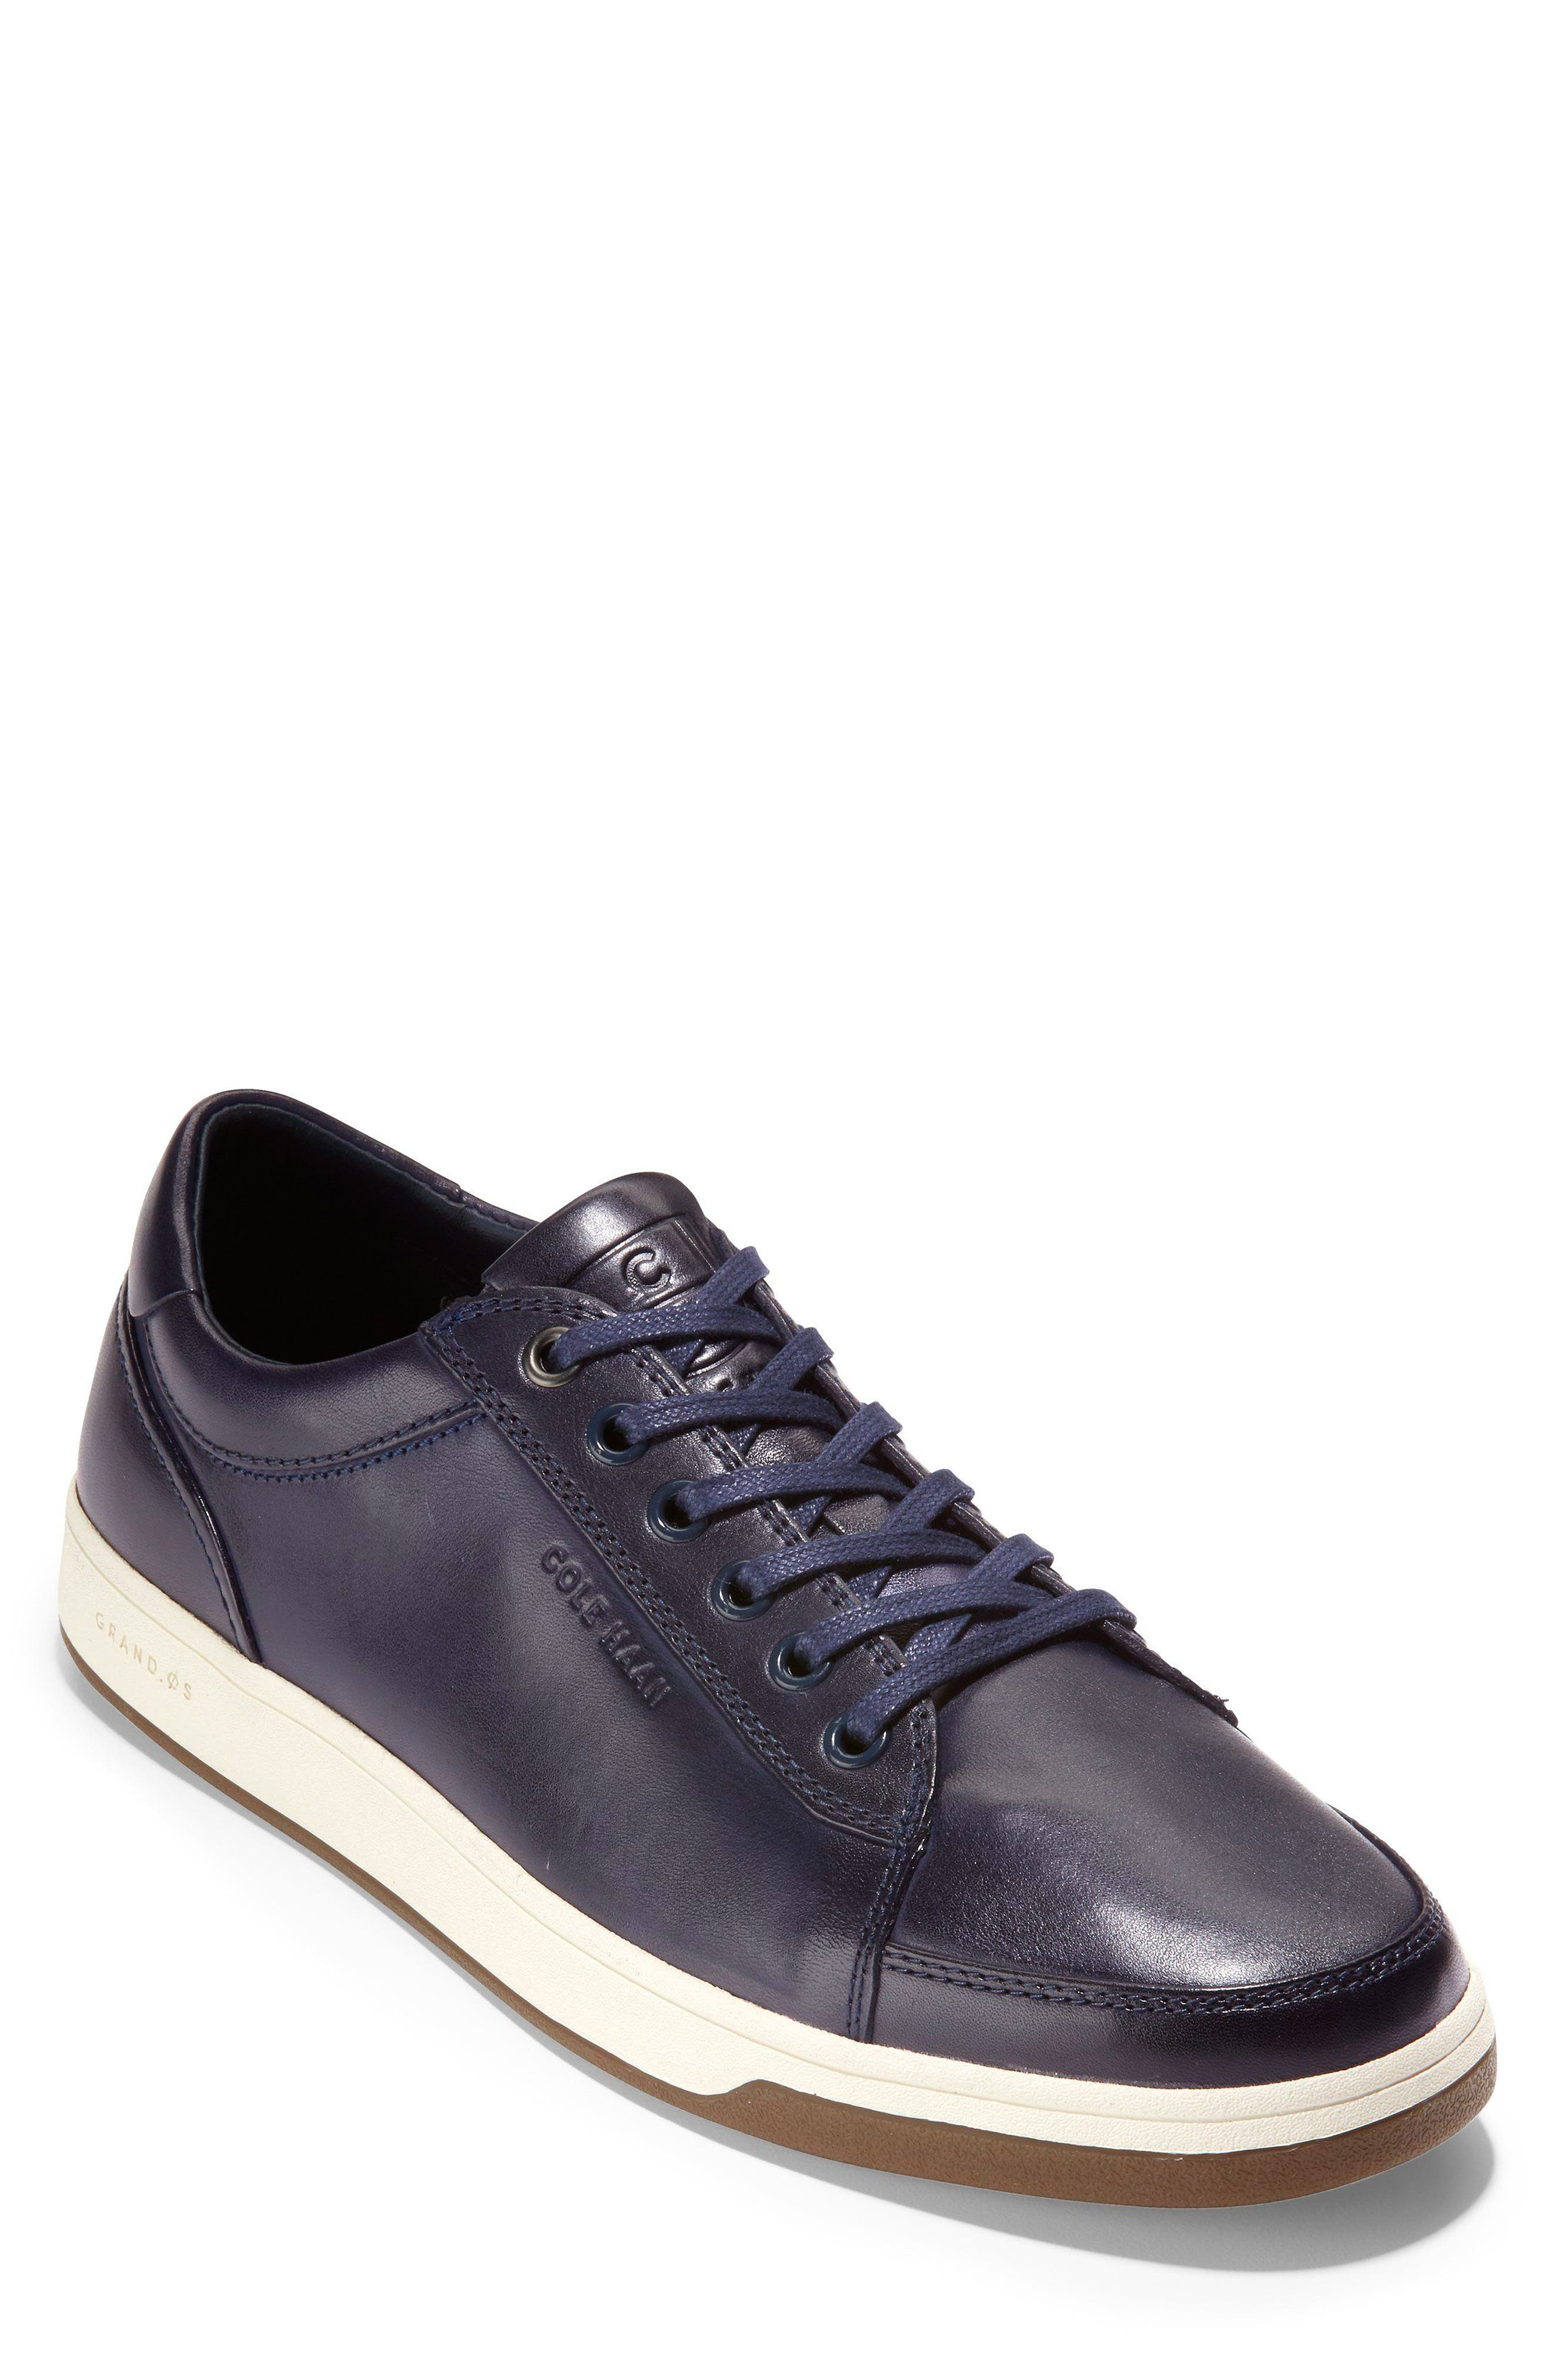 GrandPro Spectator Sneaker,                         Main,                         color, BLAZER BLUE HANDSTAIN LEATHER